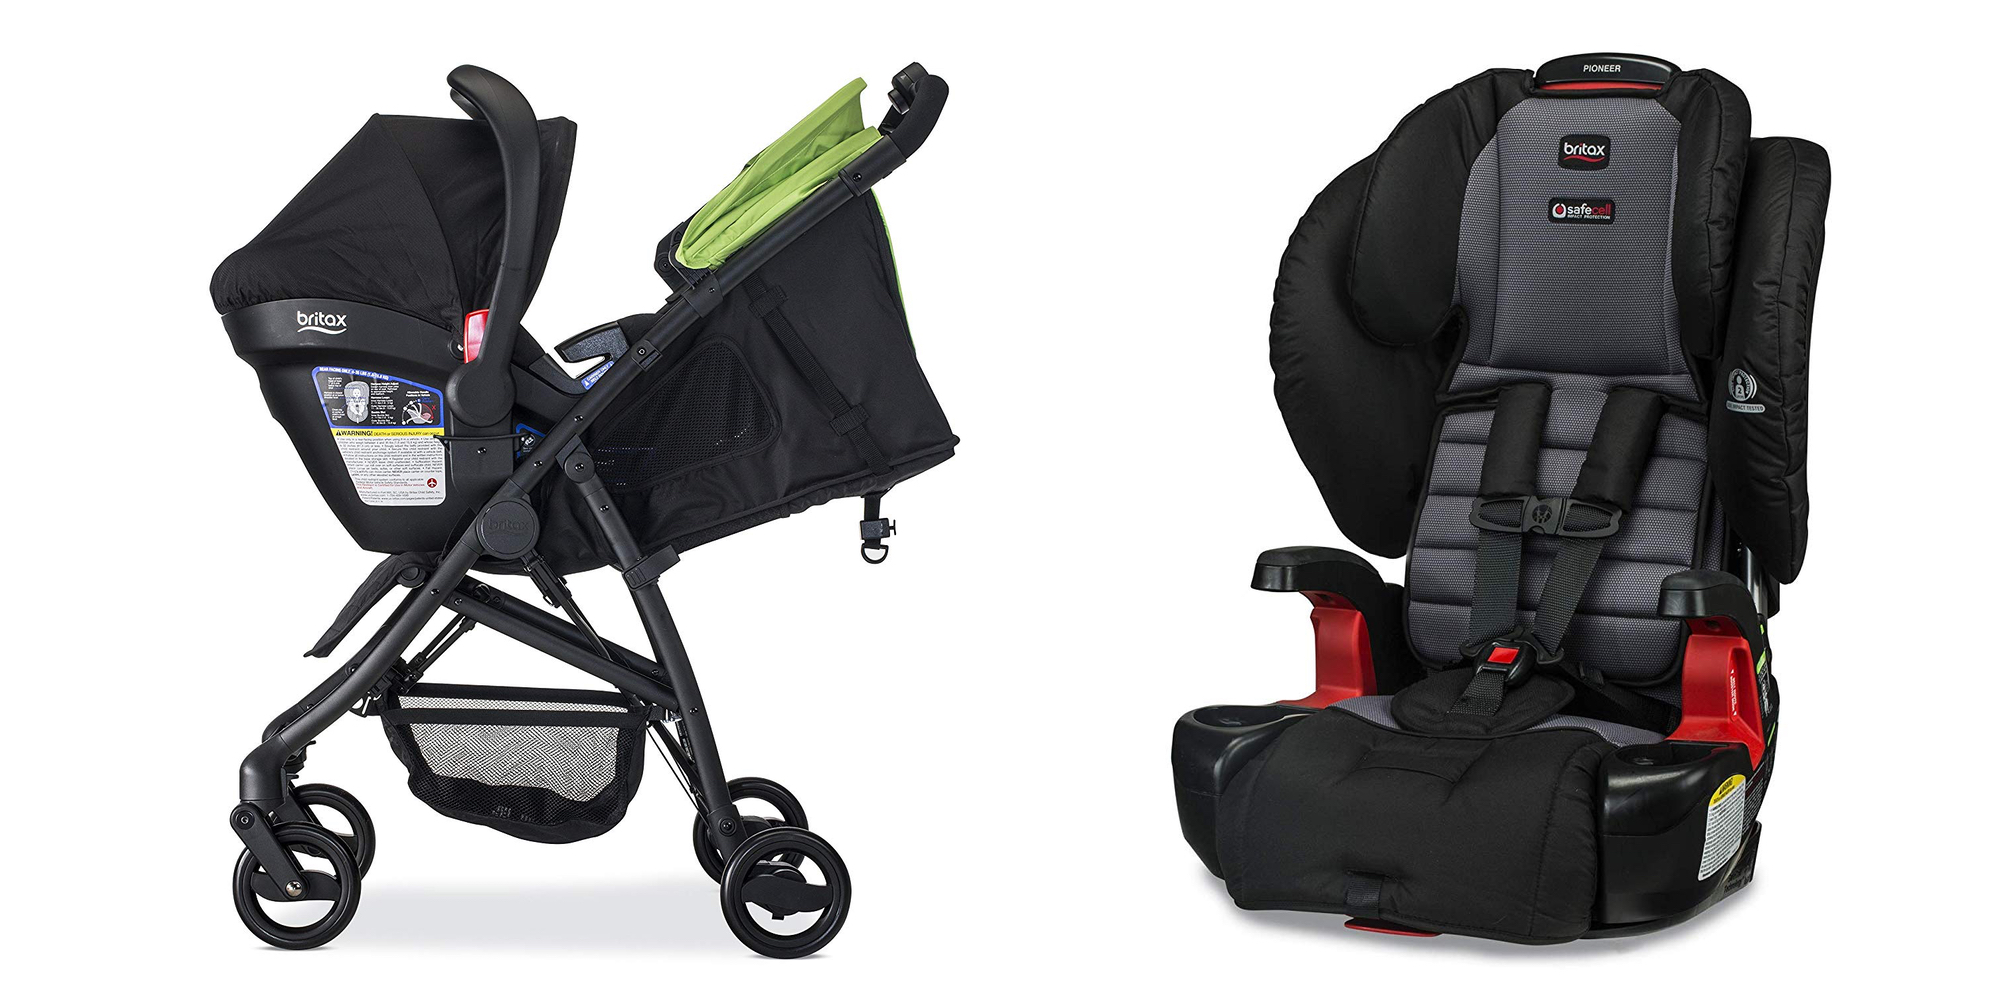 Today Only Save Up To 30 On Select Britax Car Seats And Strollers From 105 Shipped